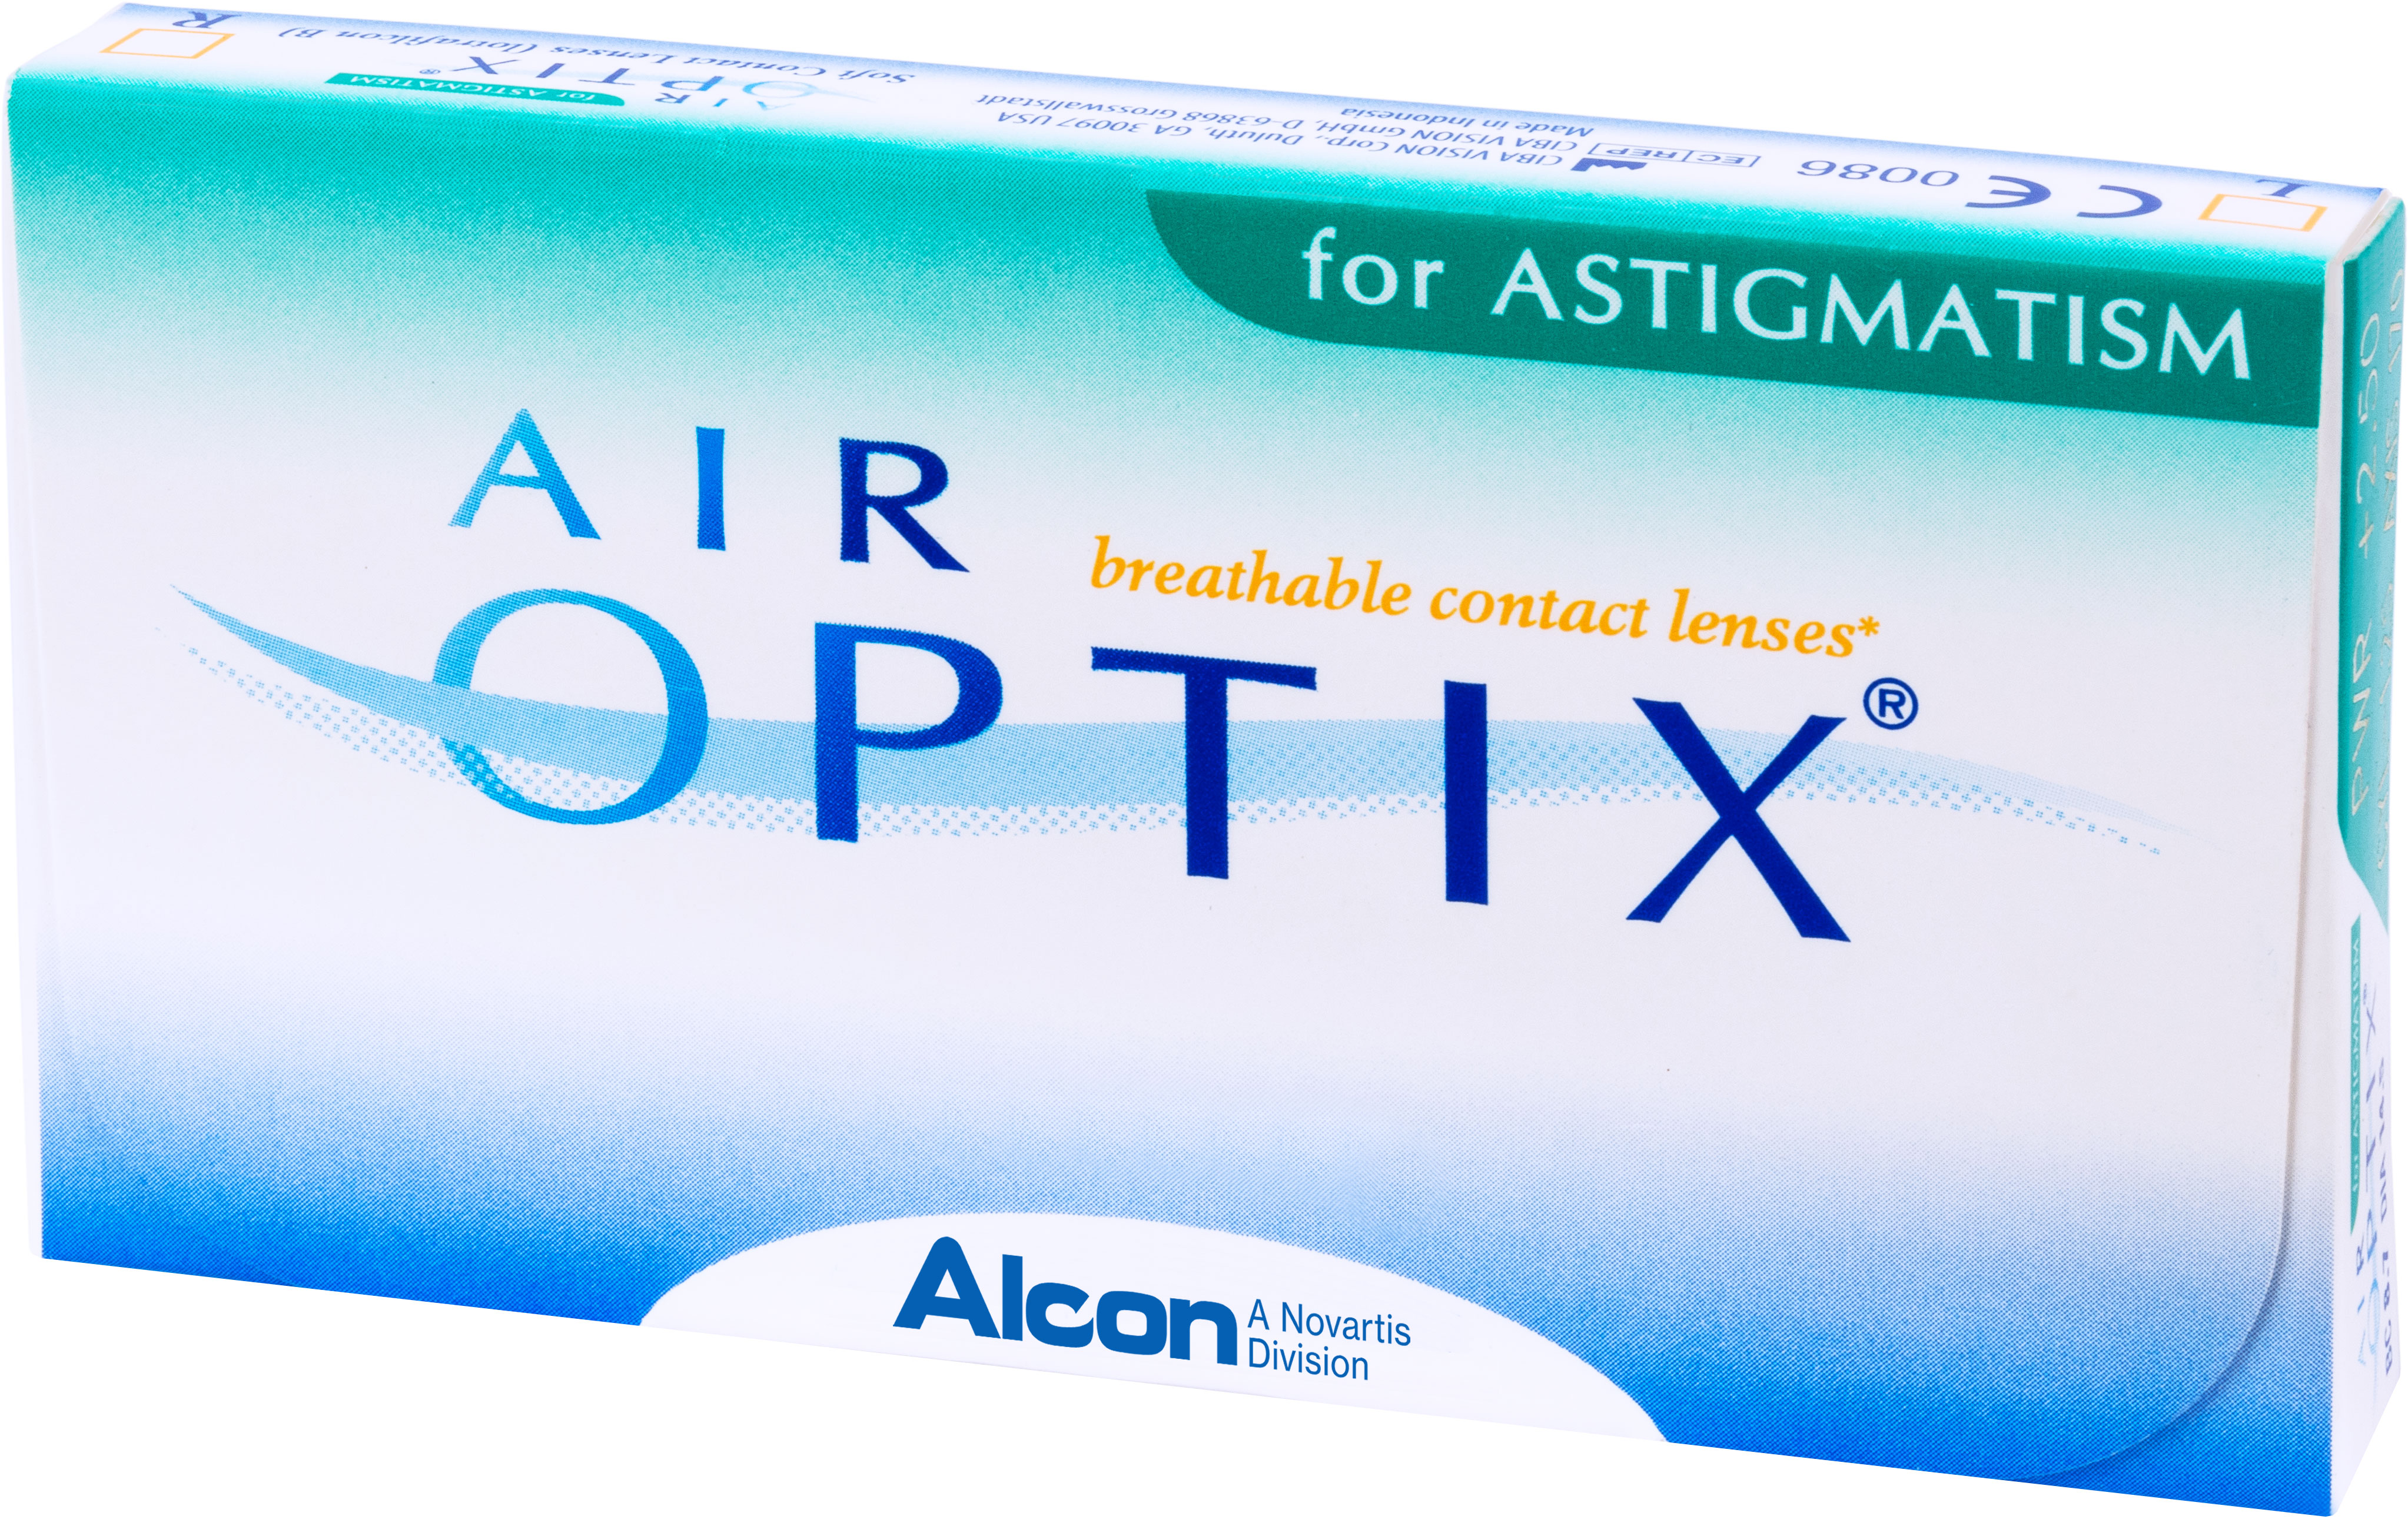 Аlcon контактные линзы Air Optix for Astigmatism 3pk /BC 8.7/DIA14.5/PWR -2.50/CYL -1.25/AXIS 30100030400with Hydraclear